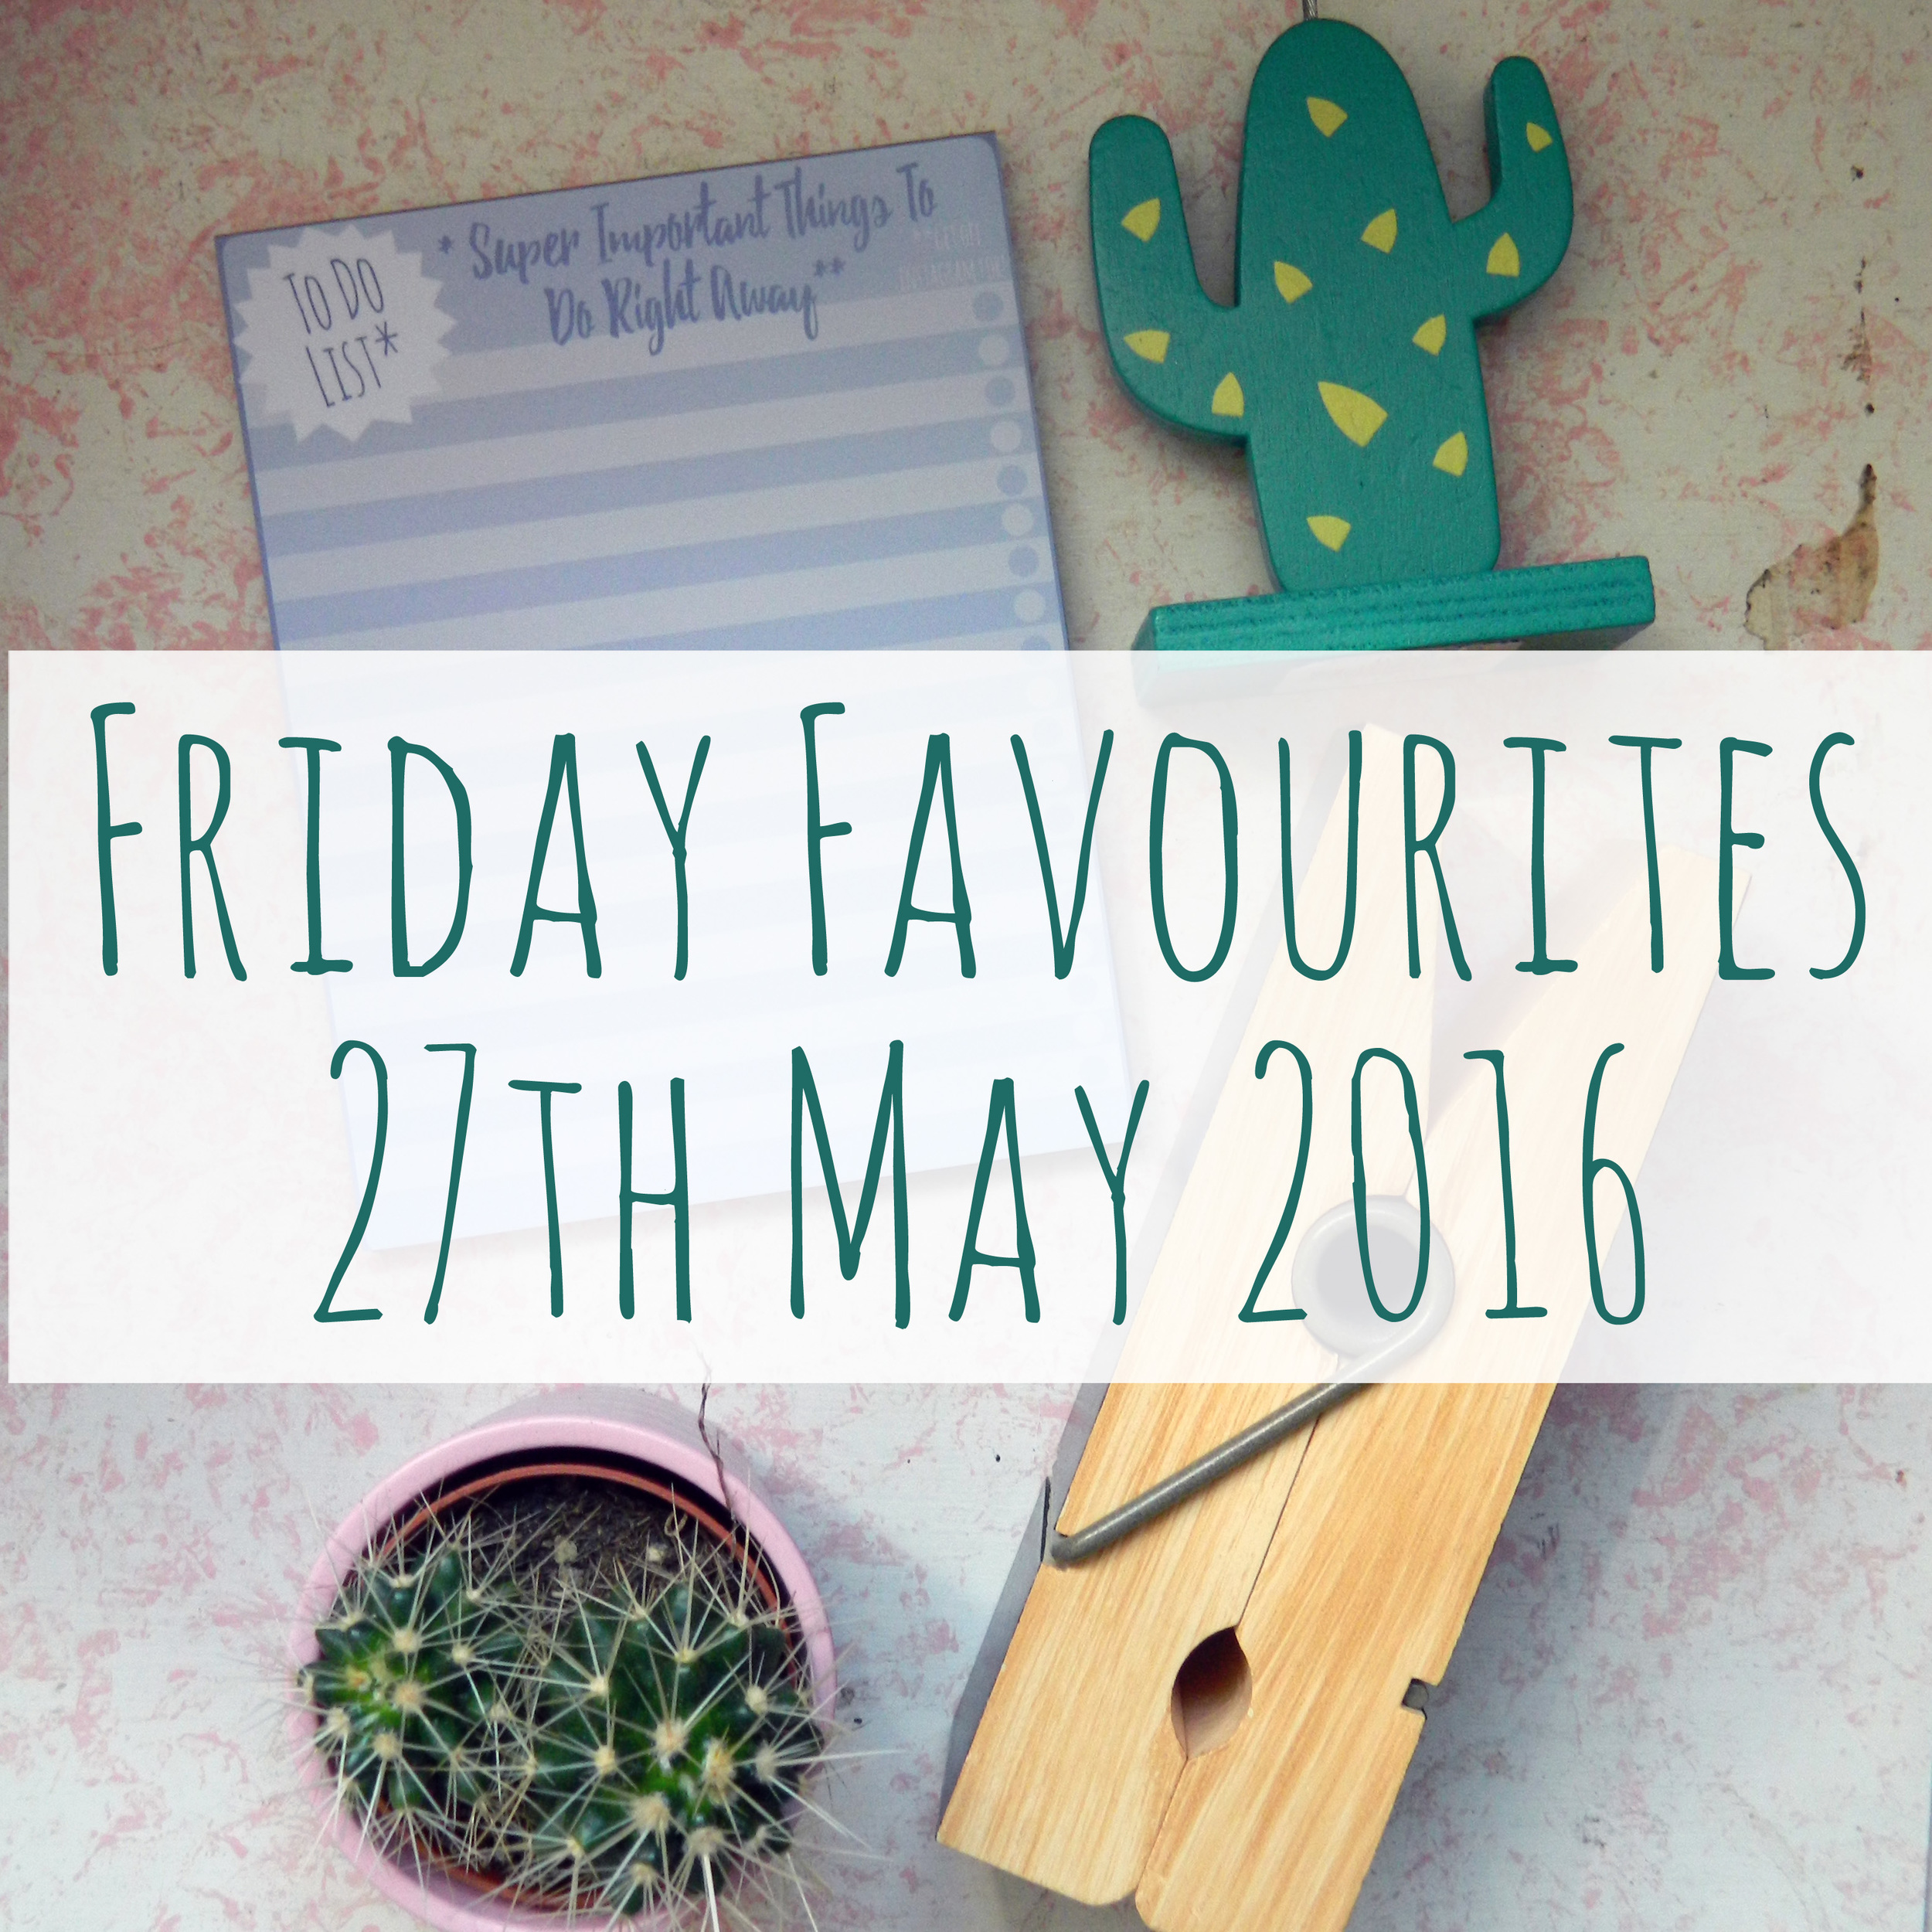 Friday Favourites 21st - 27th May 2016